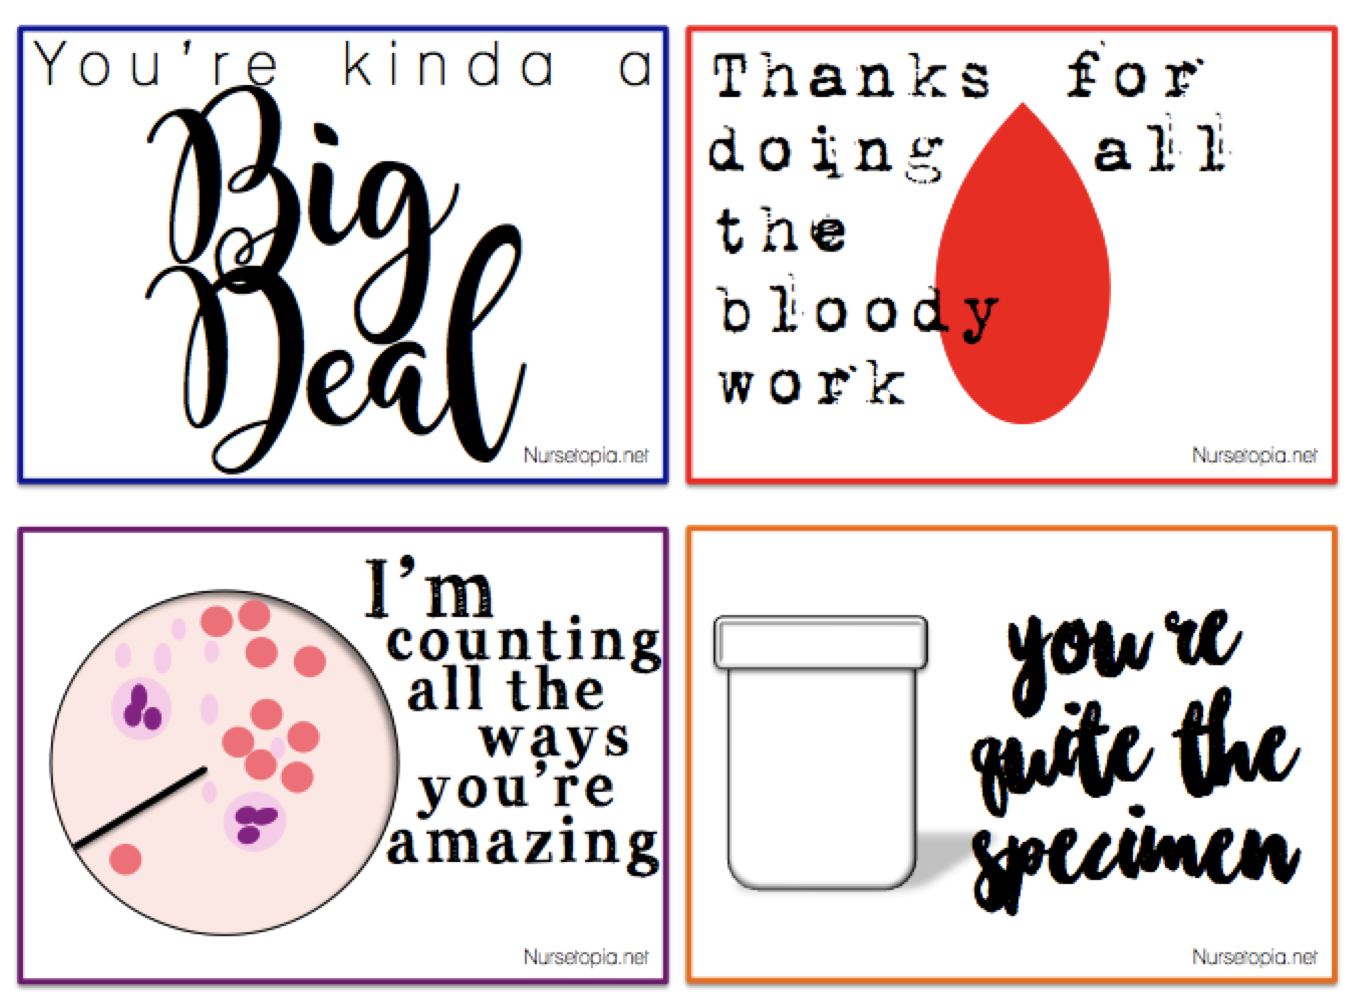 Printable – Nursetopia - Nurses Week 2016 Cards Free Printable